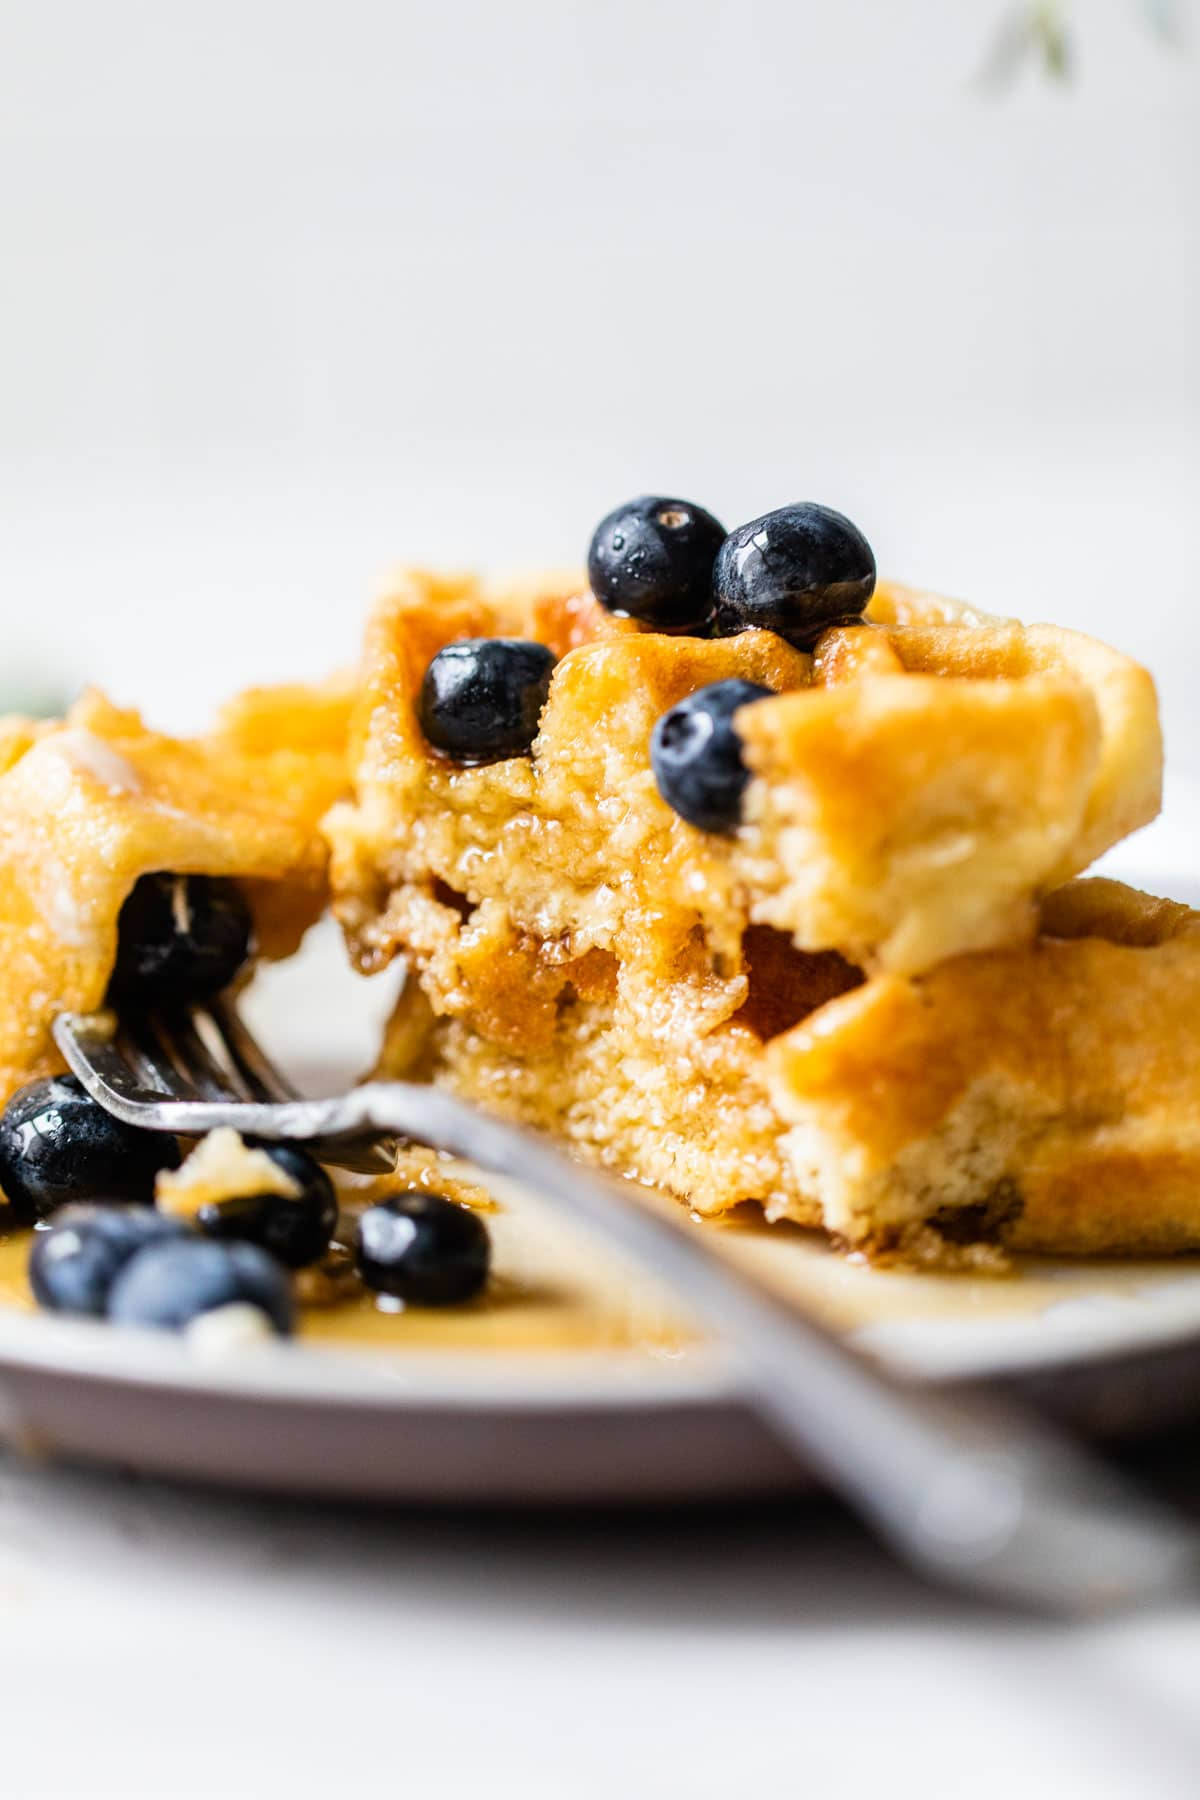 waffles topped with blueberries